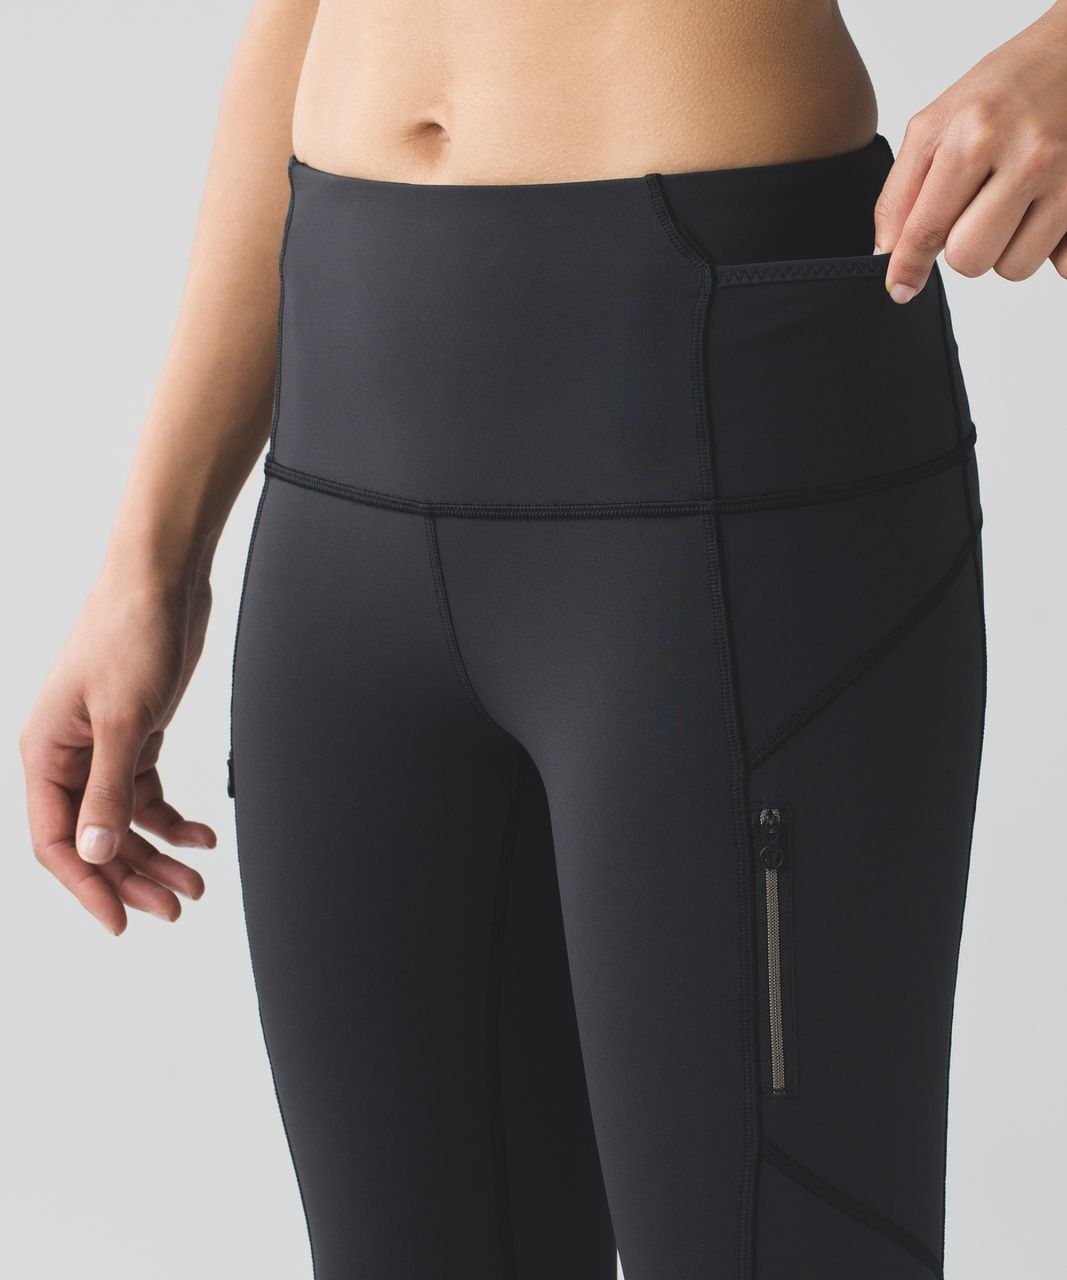 Lululemon Lucent Ice Queen Tight - Black